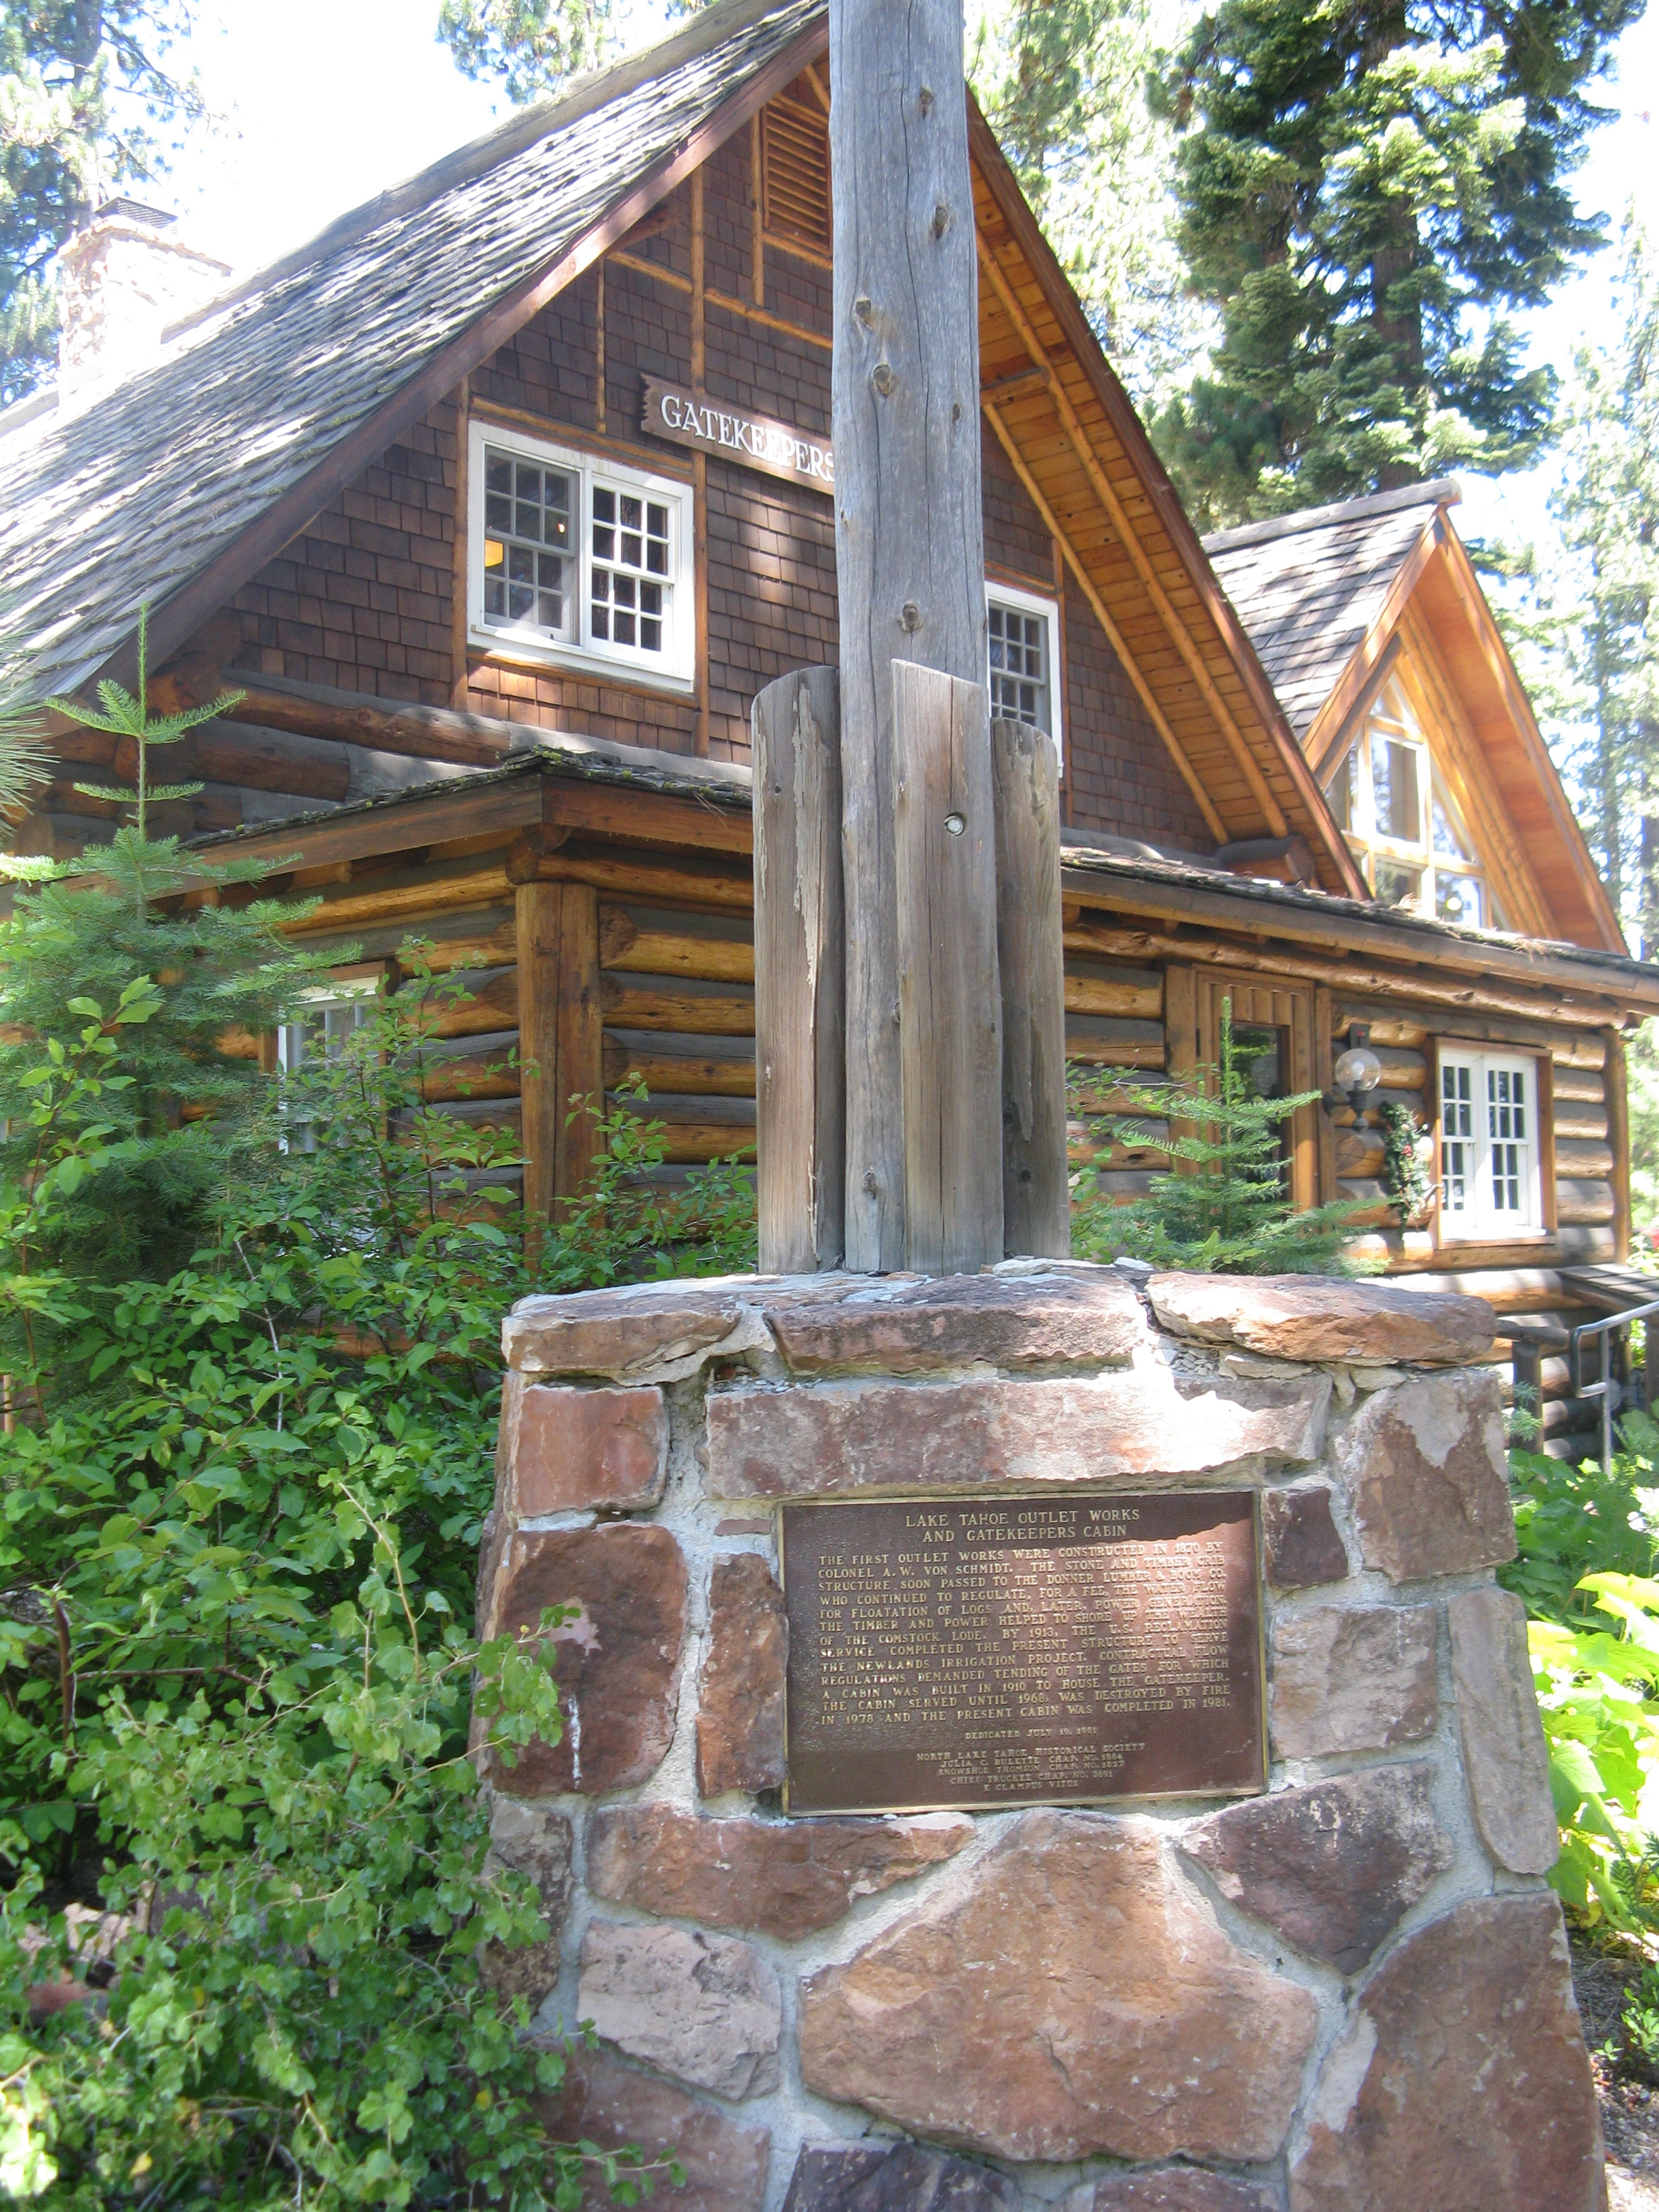 Lake Tahoe Outlet Works and Gatekeepers Cabin Marker With The Gatekeepers Museum in the Background